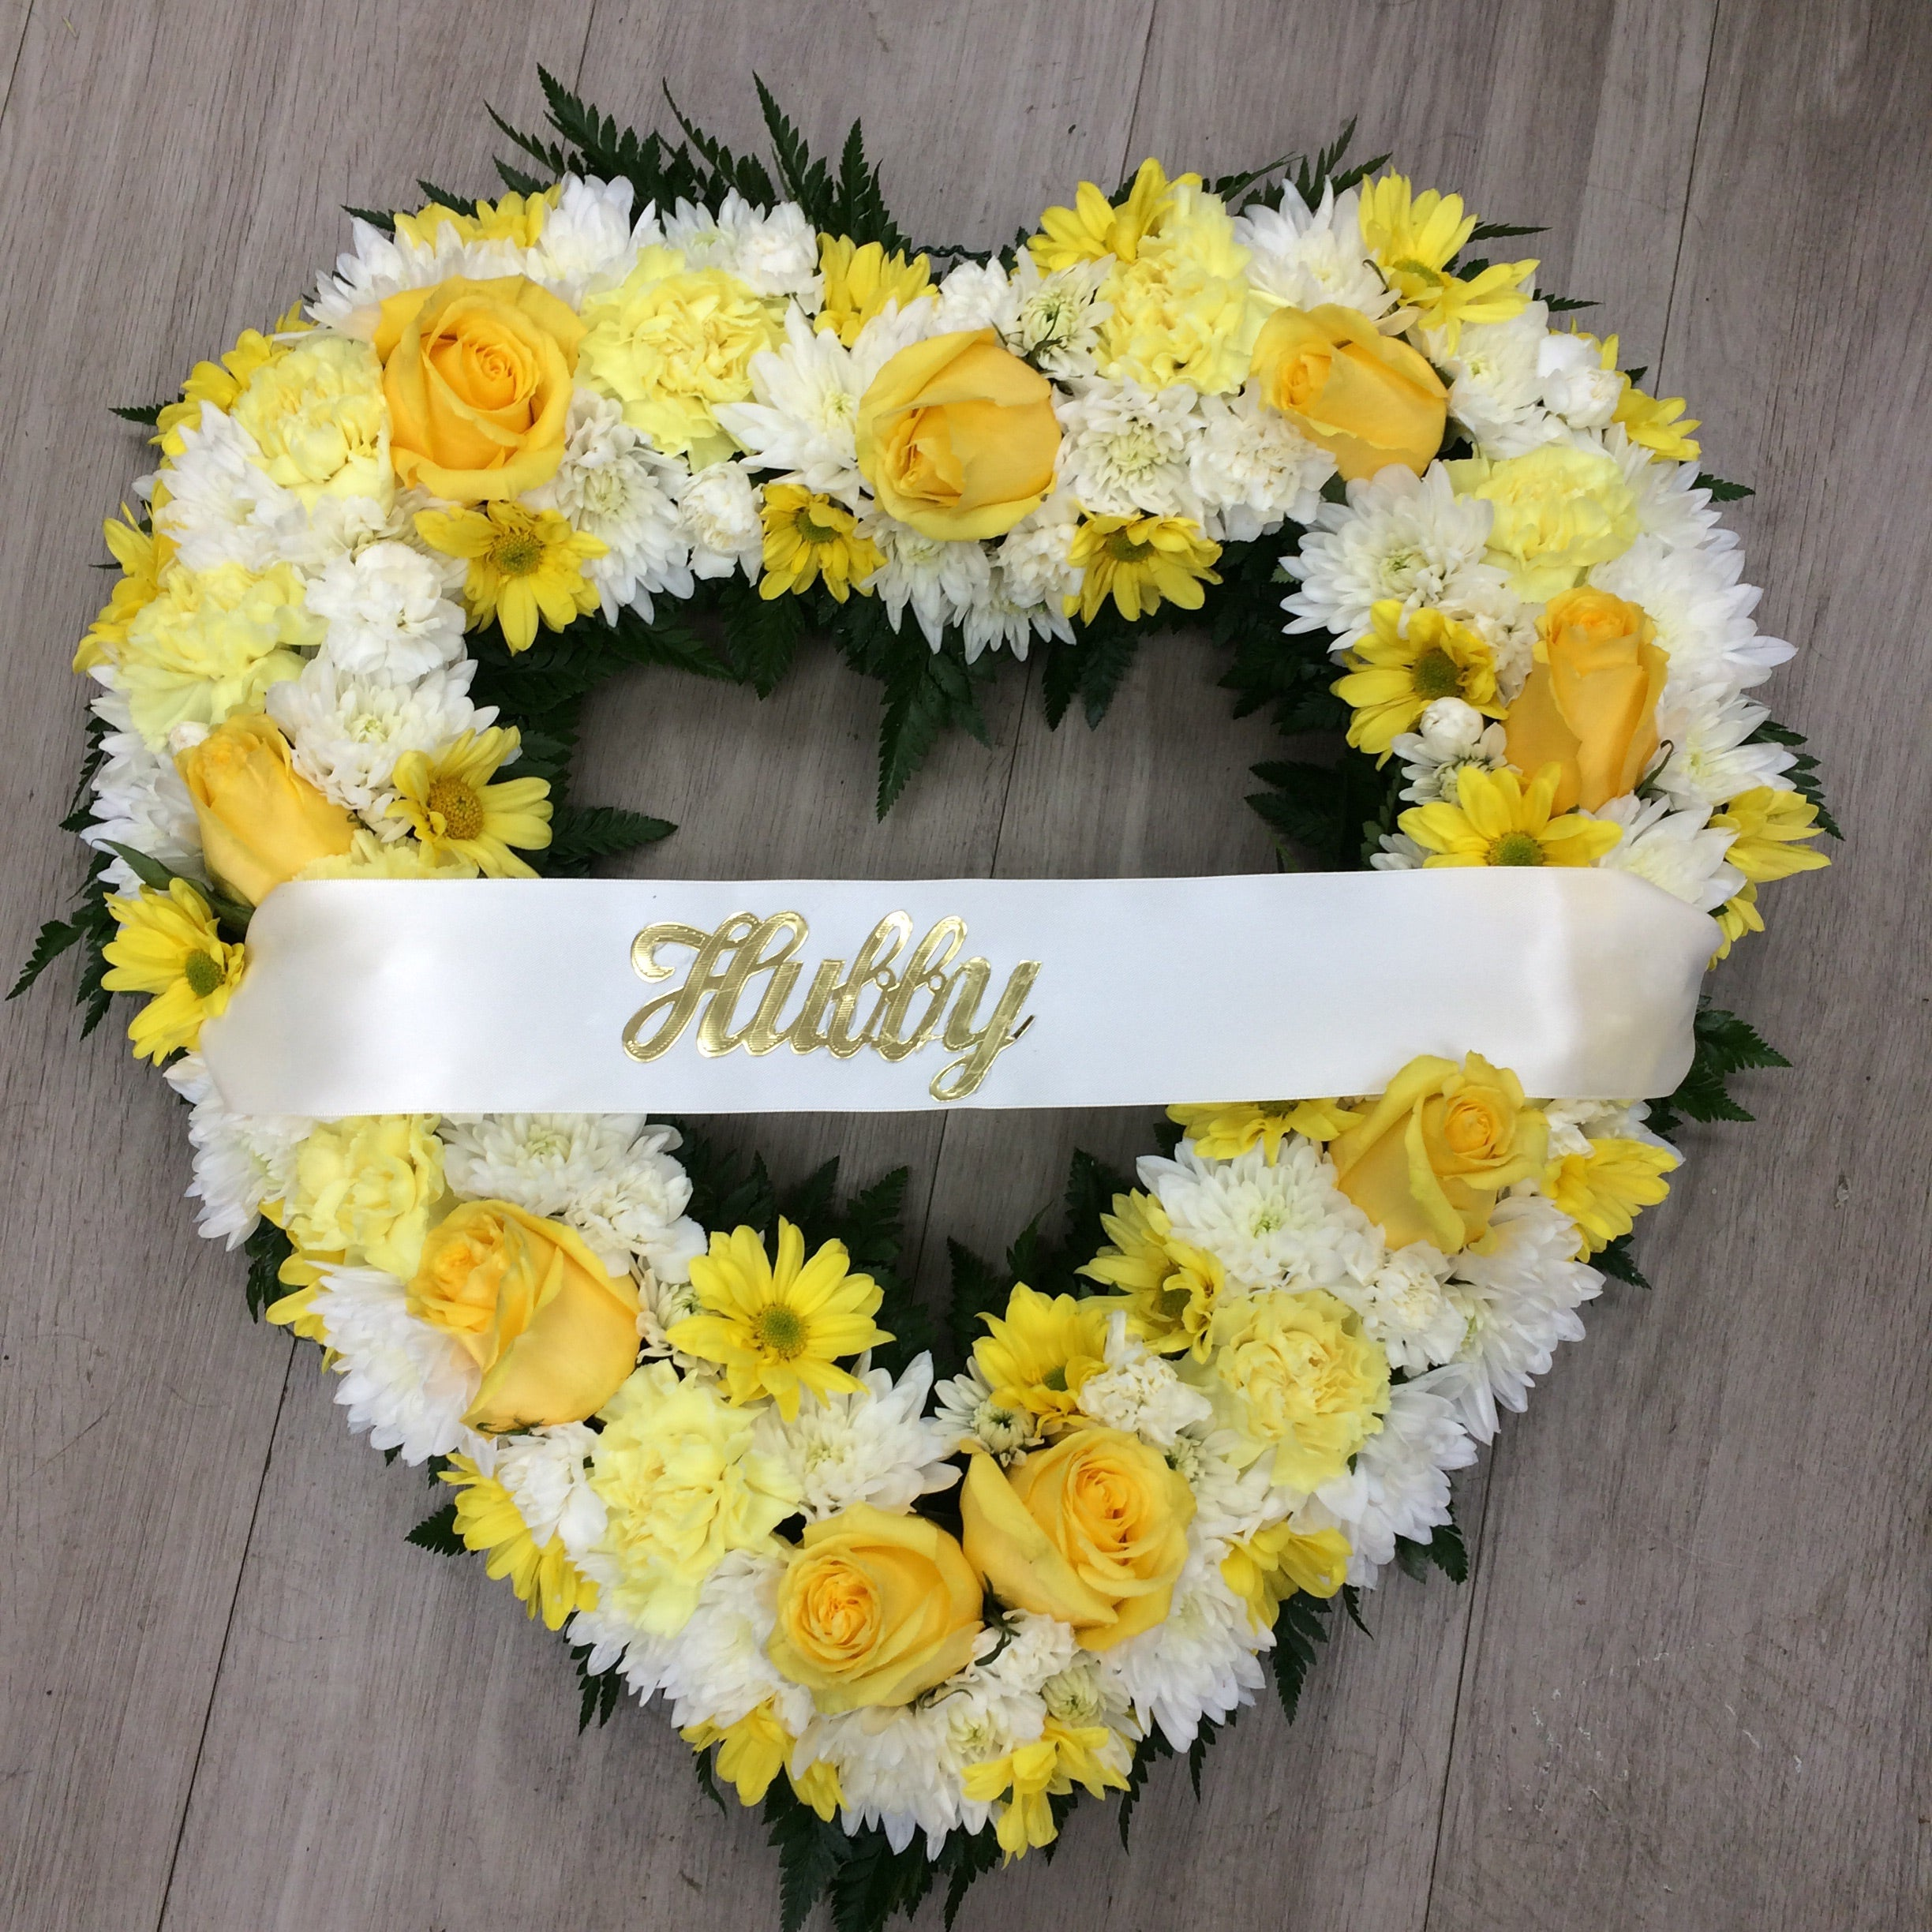 Wreaths, hearts and crosses